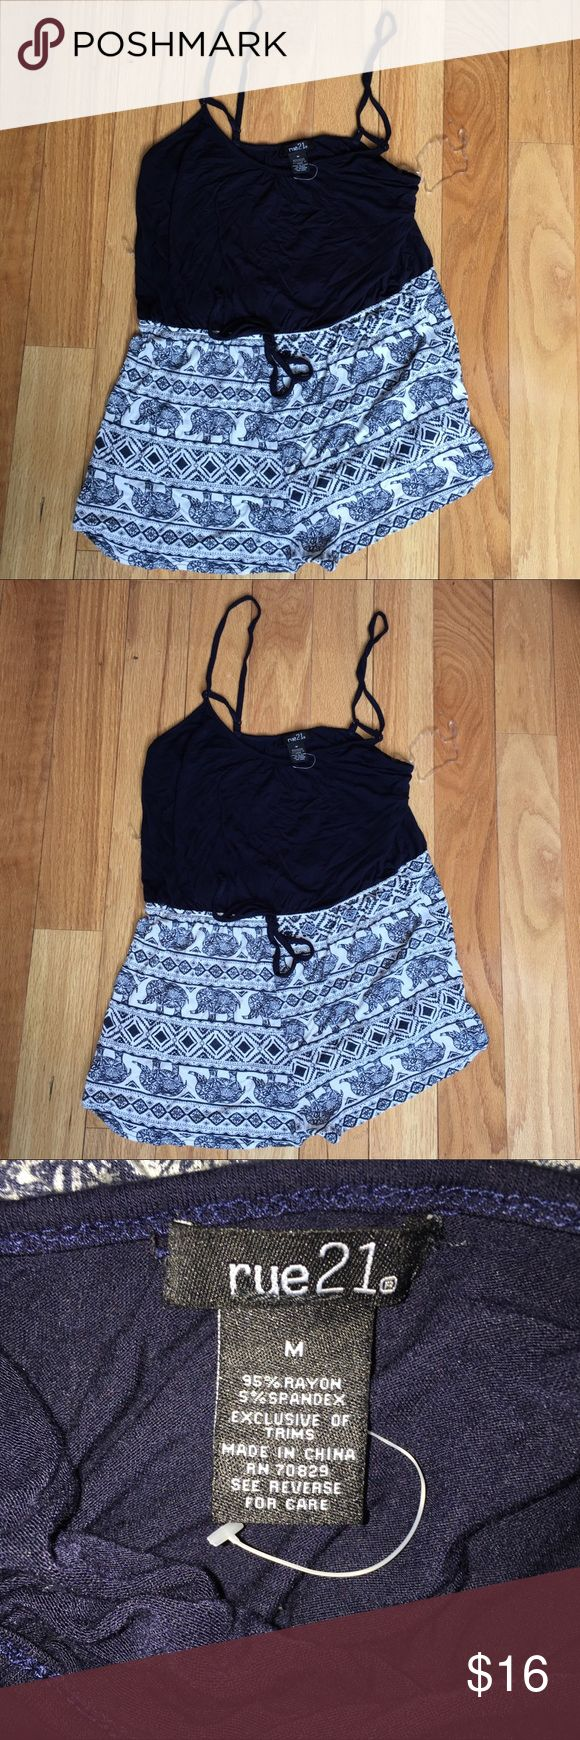 NWOT Rue 21 navy blue romper medium Navy blue animal print romper; new without tag; cute set! Size medium Rue 21 Shorts